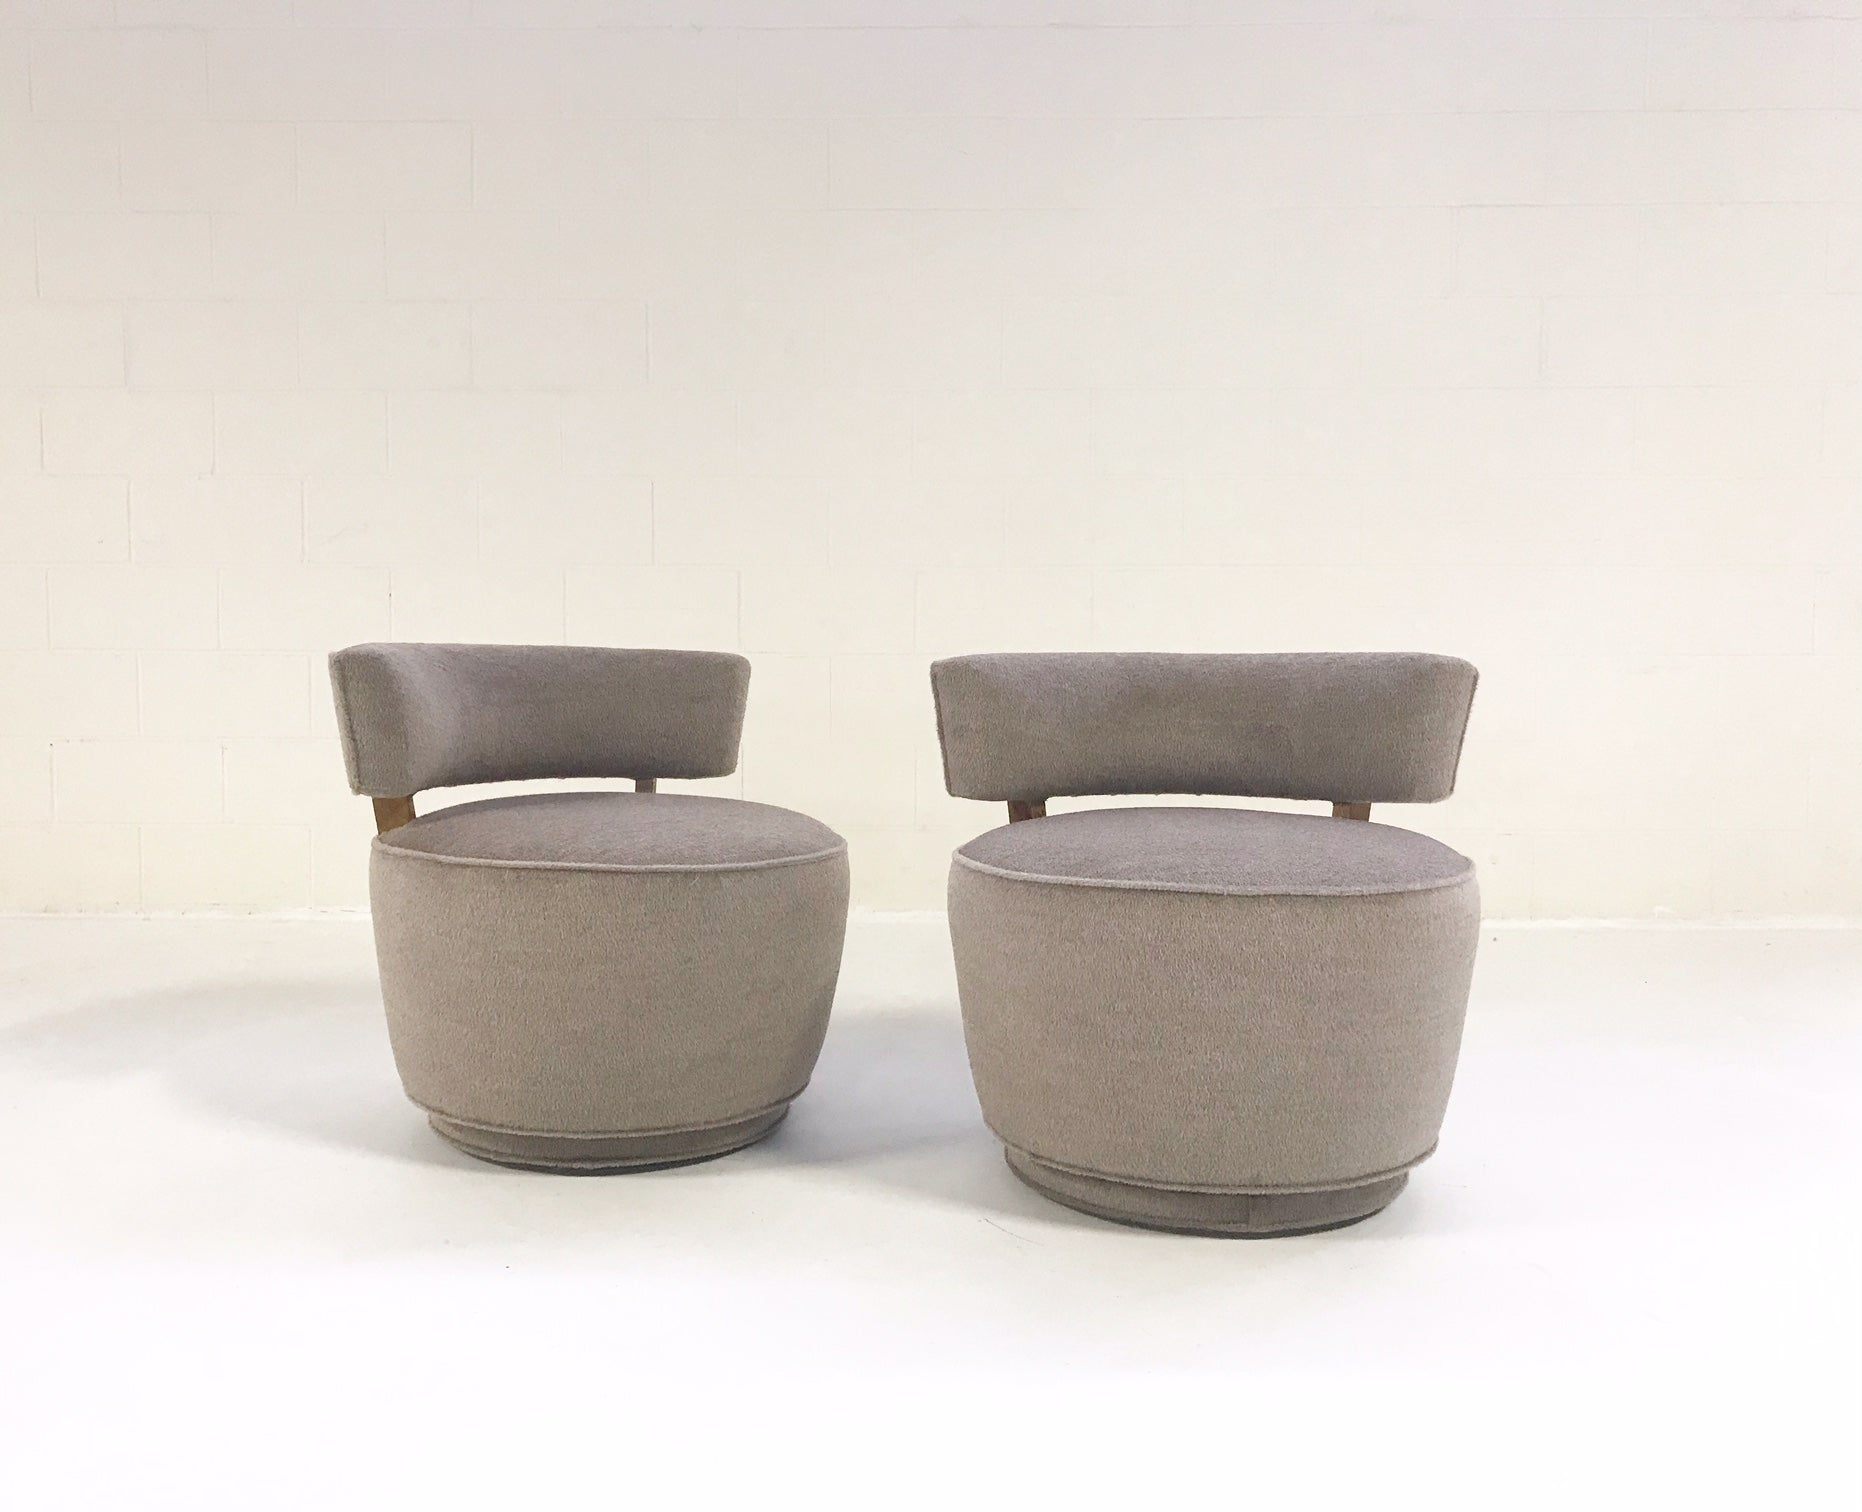 Tub Chairs in Loro Piana Alpaca Wool, pair - FORSYTH